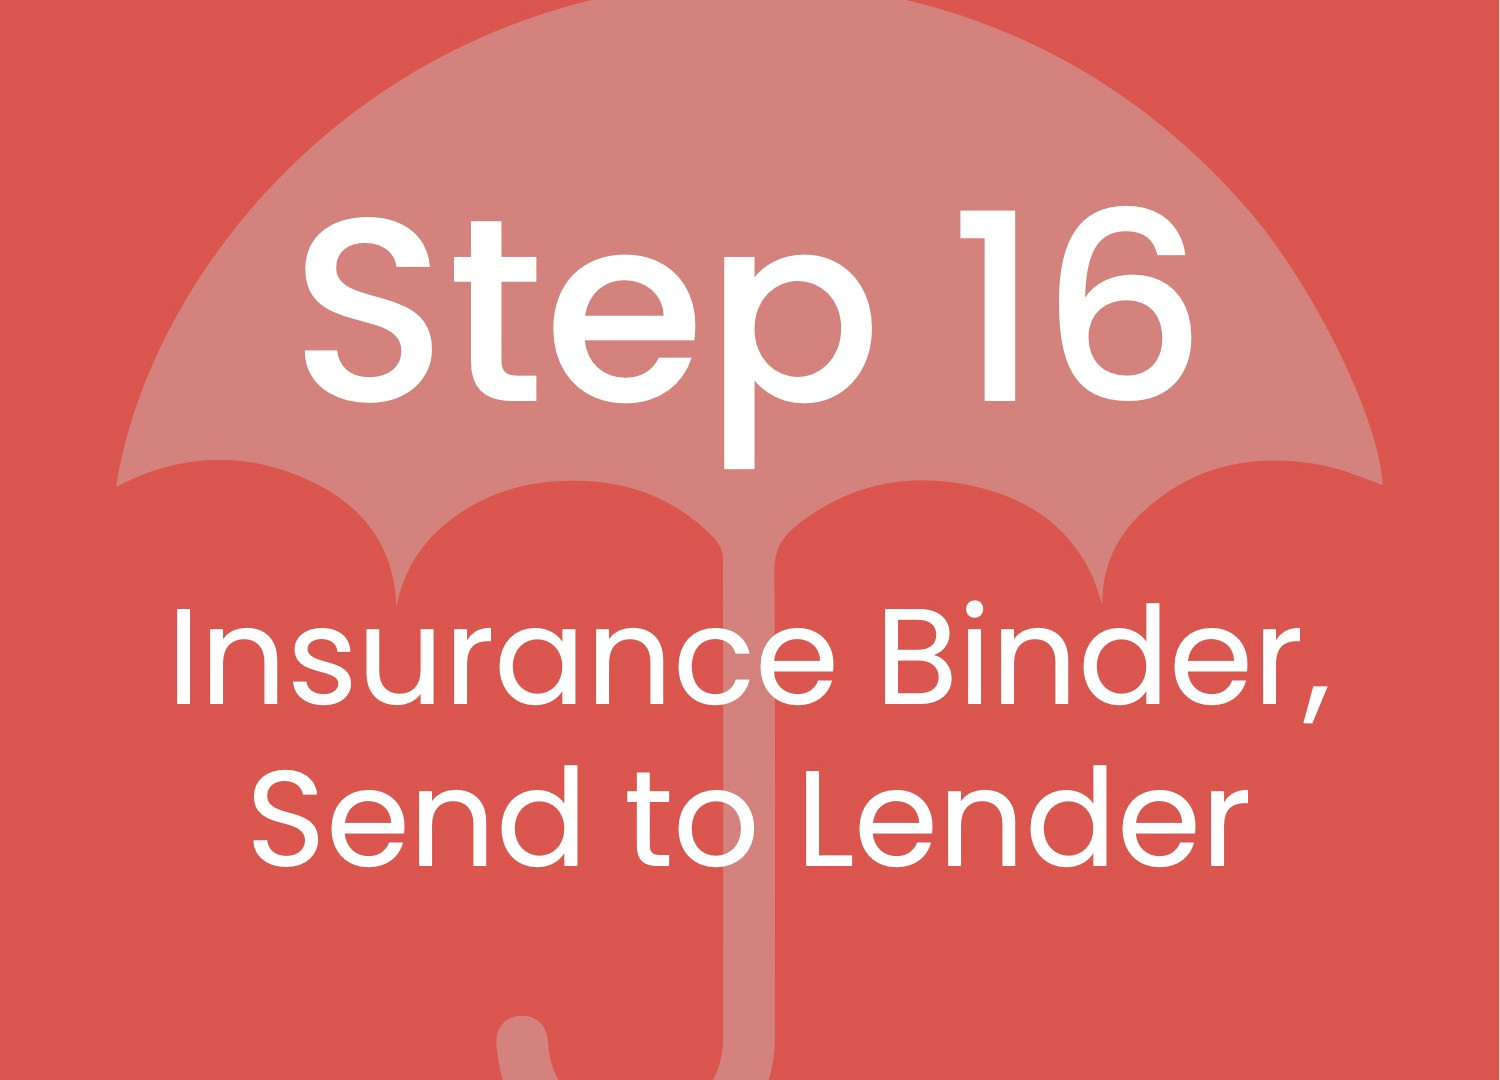 Step 16: Insurance Binder, Send to Lender